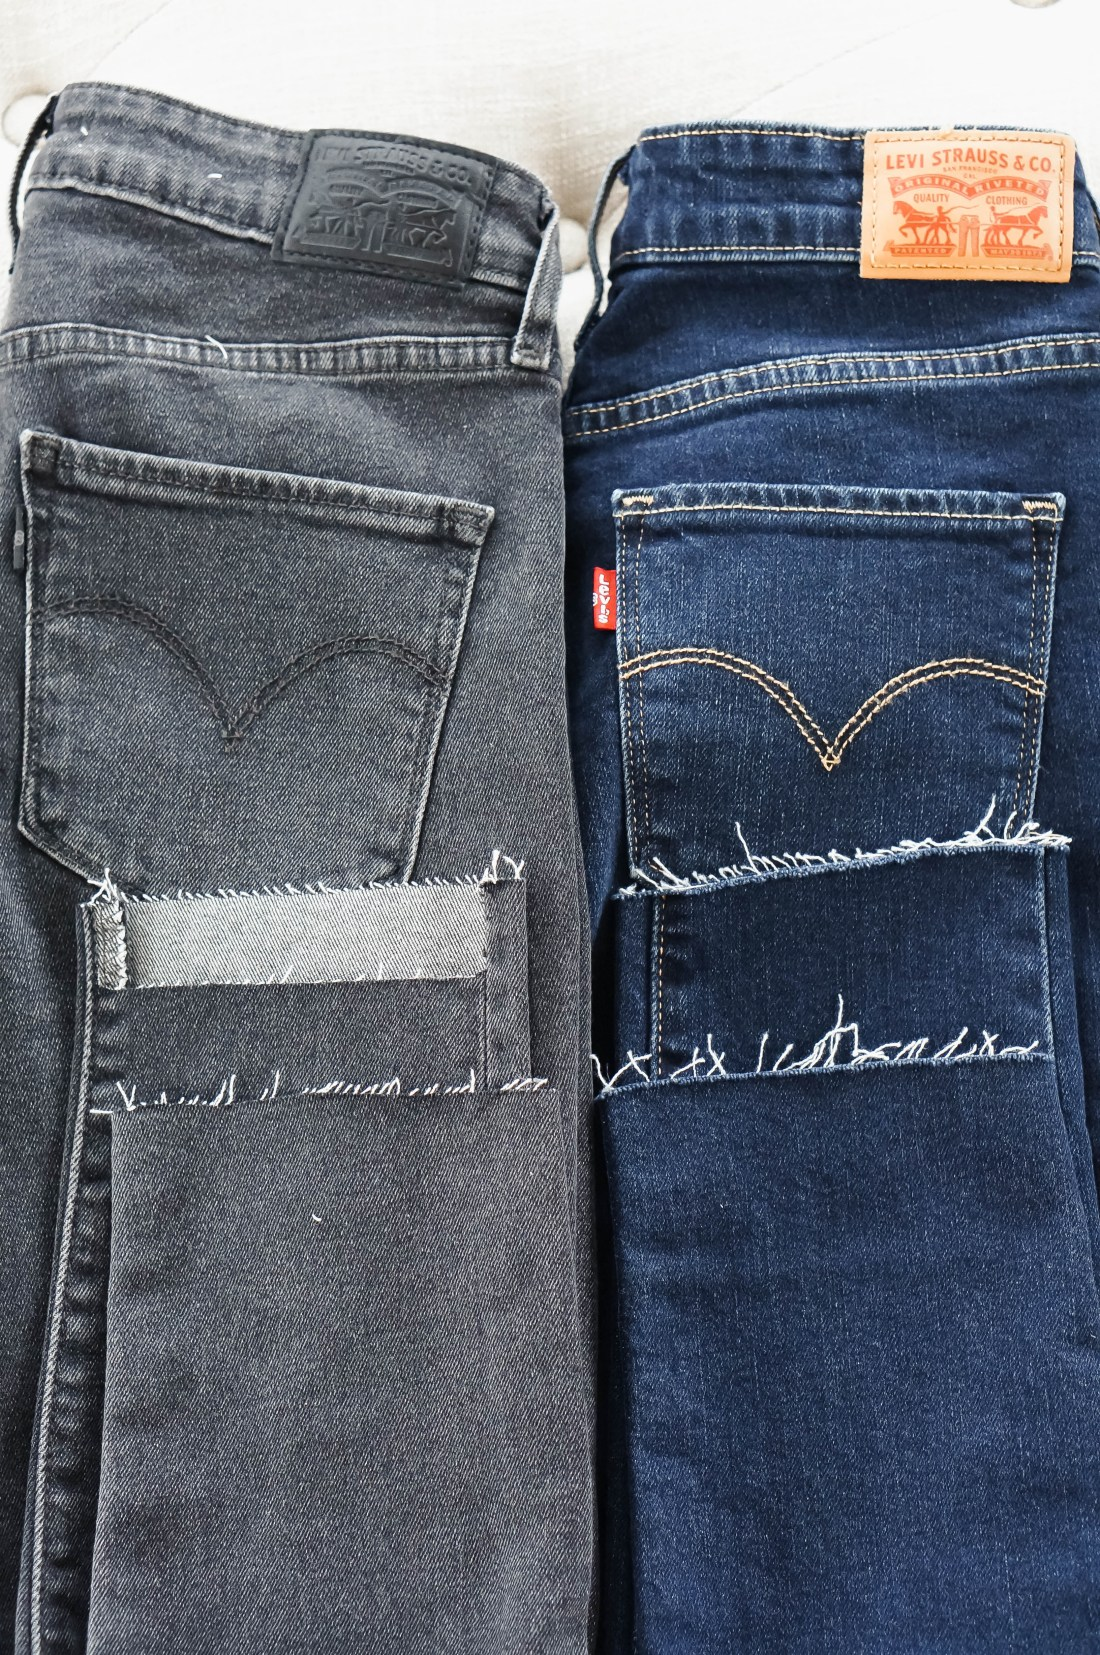 DIY: How To Cut The Hem Off Jeans   Red White & Denim